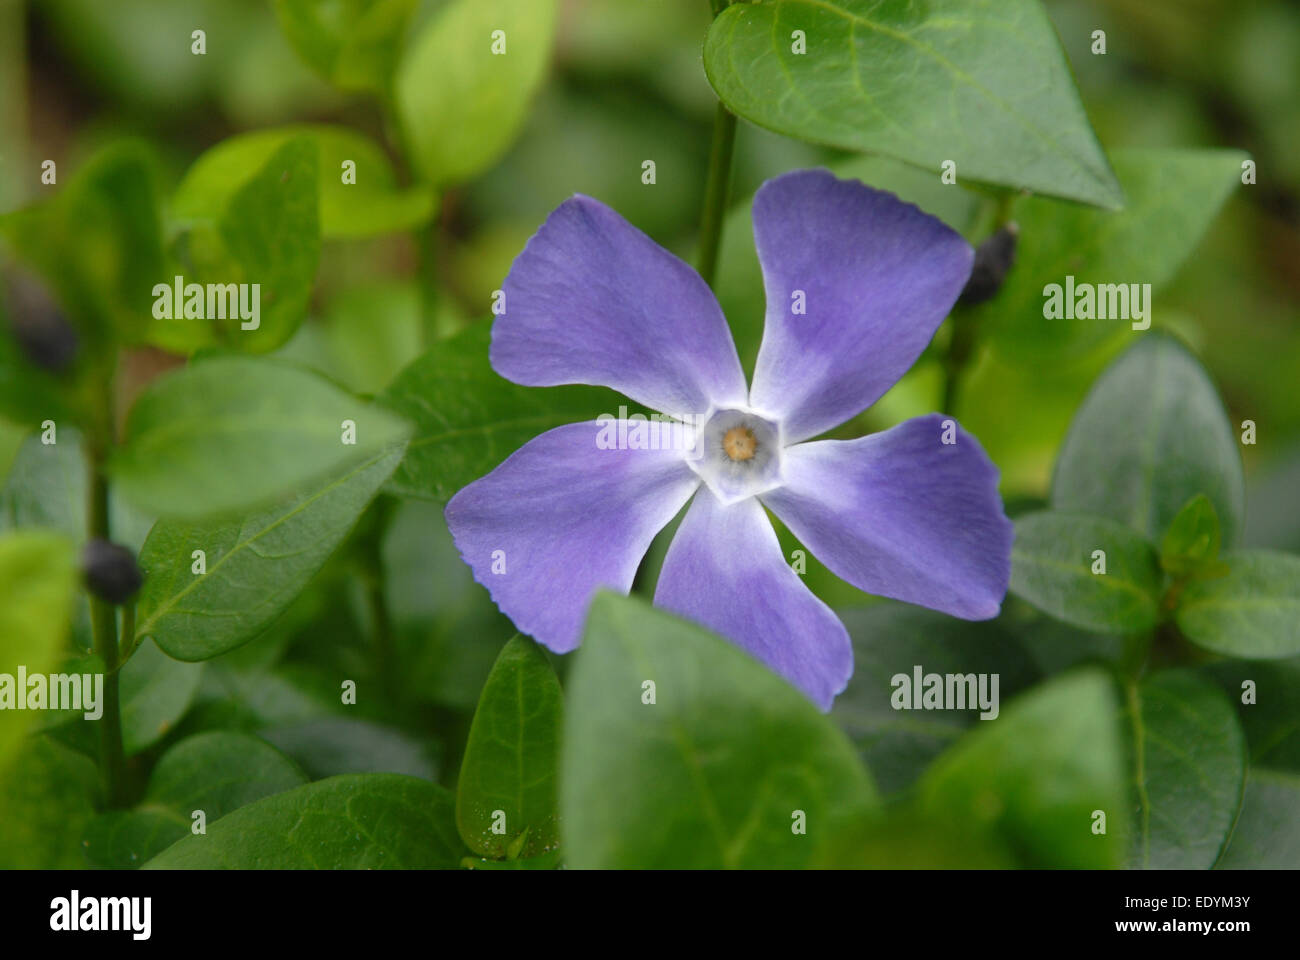 This is a periwinkle (Vinca minor) in bloom. Violet flower is situated against green leaves background. - Stock Image